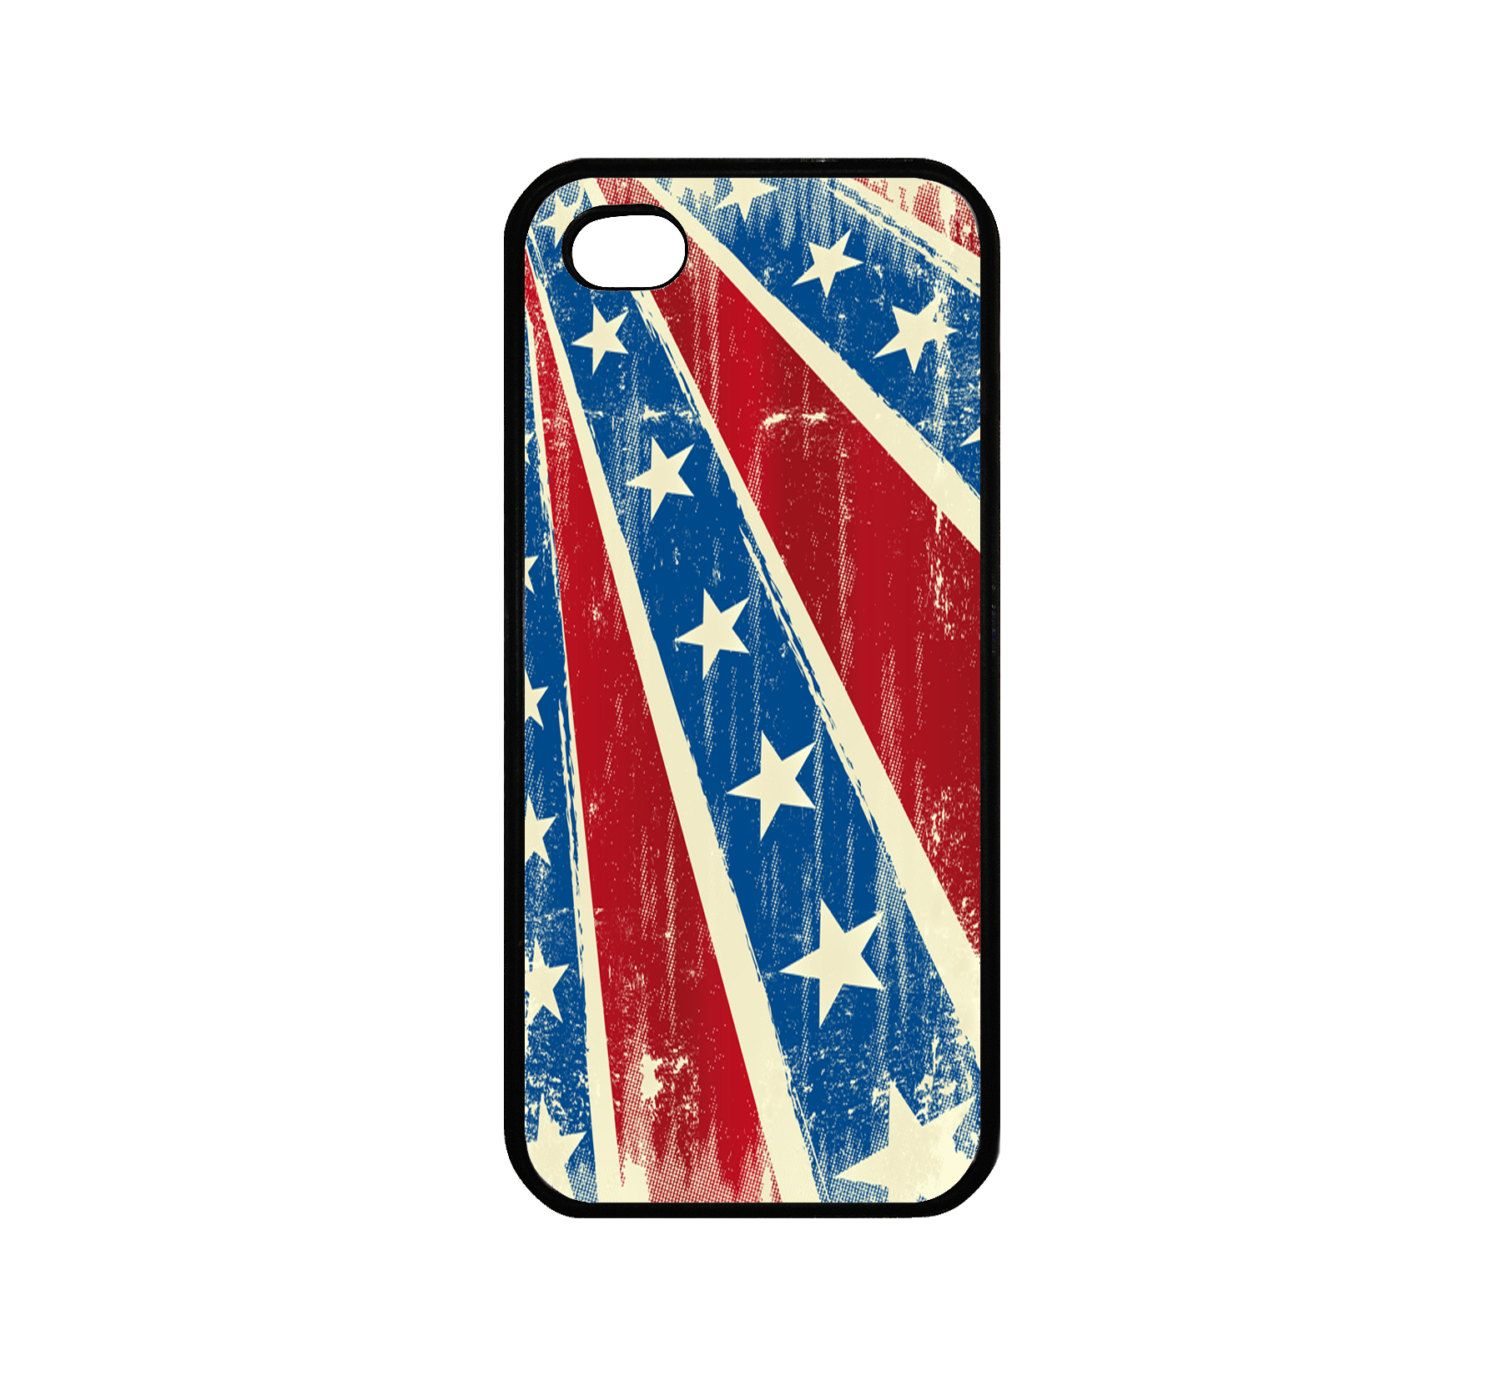 Protective Iphone 5 Case Confederate Banner 17 00 Via Etsy Iphone 5 Case Illustration Iphone Case Iphone 5